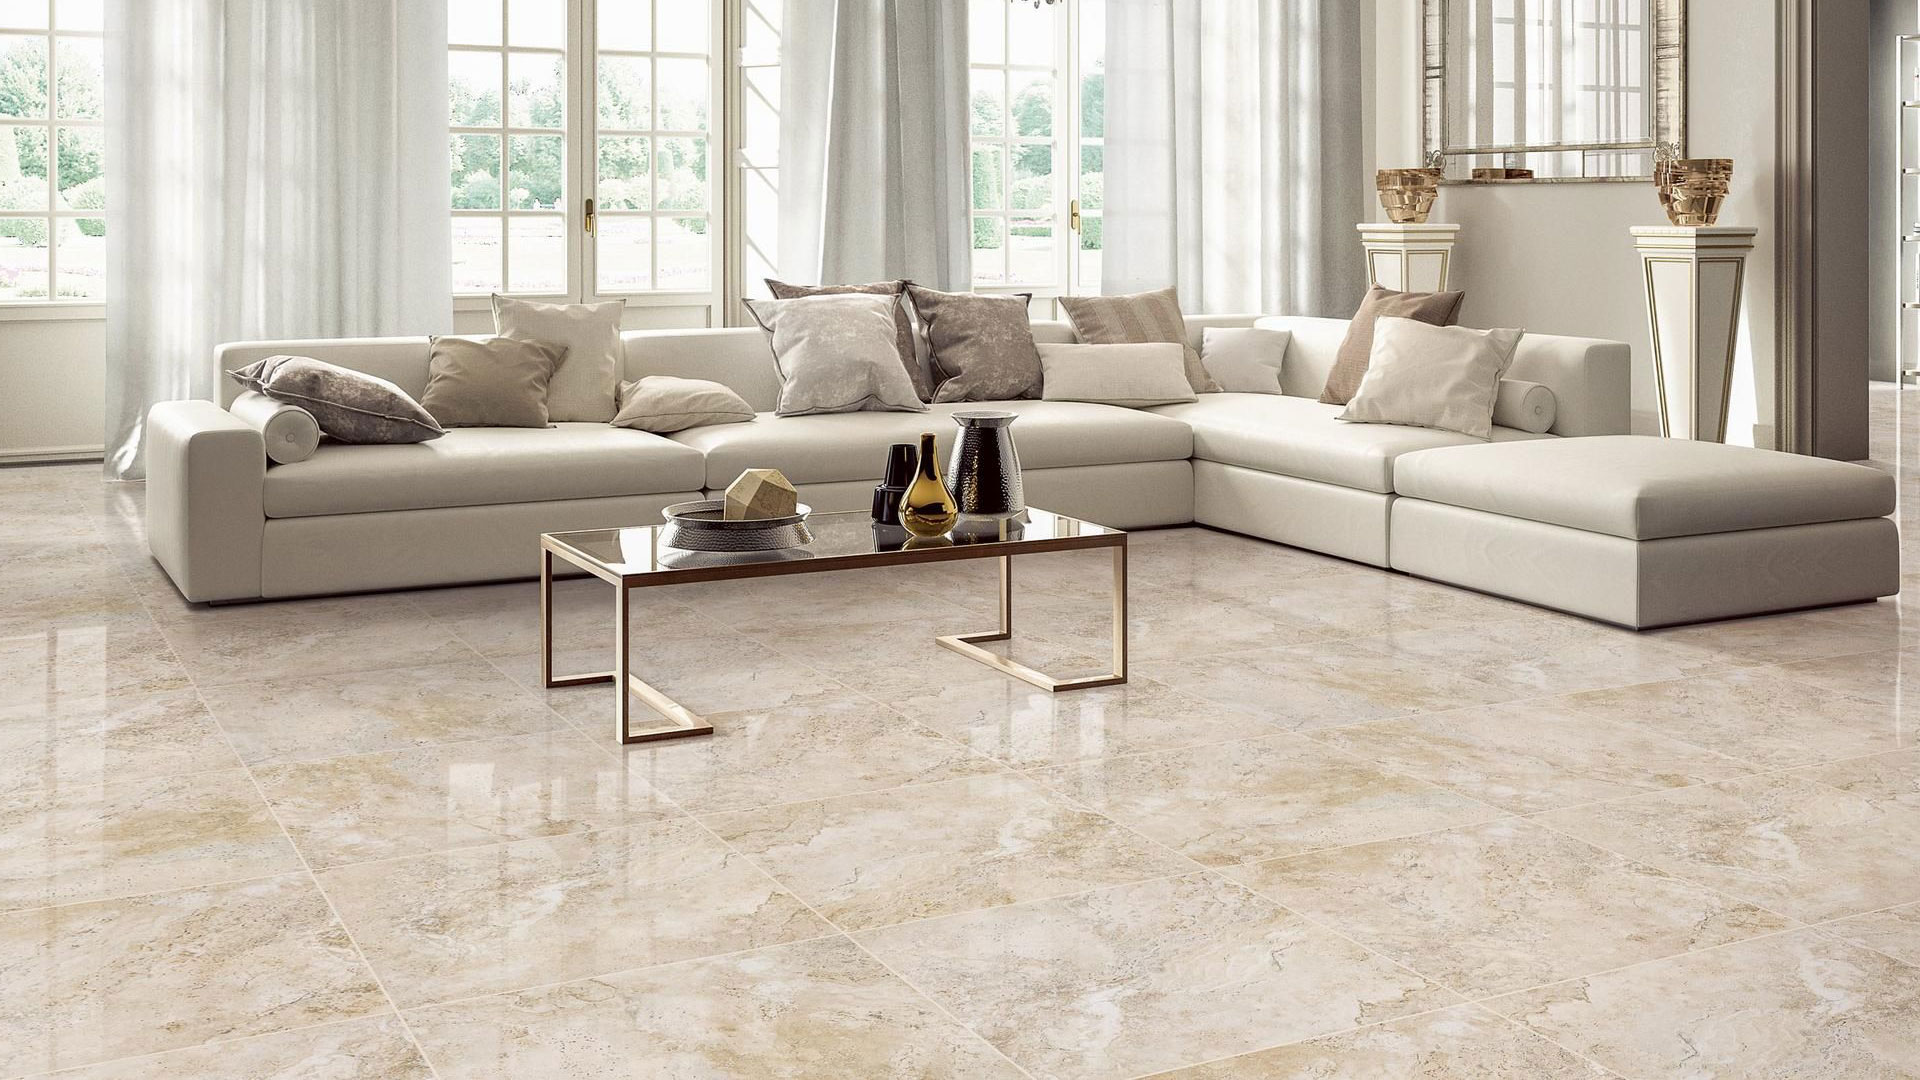 Porcelain Tiles for your Home Remodeling project in Citrus County, FL